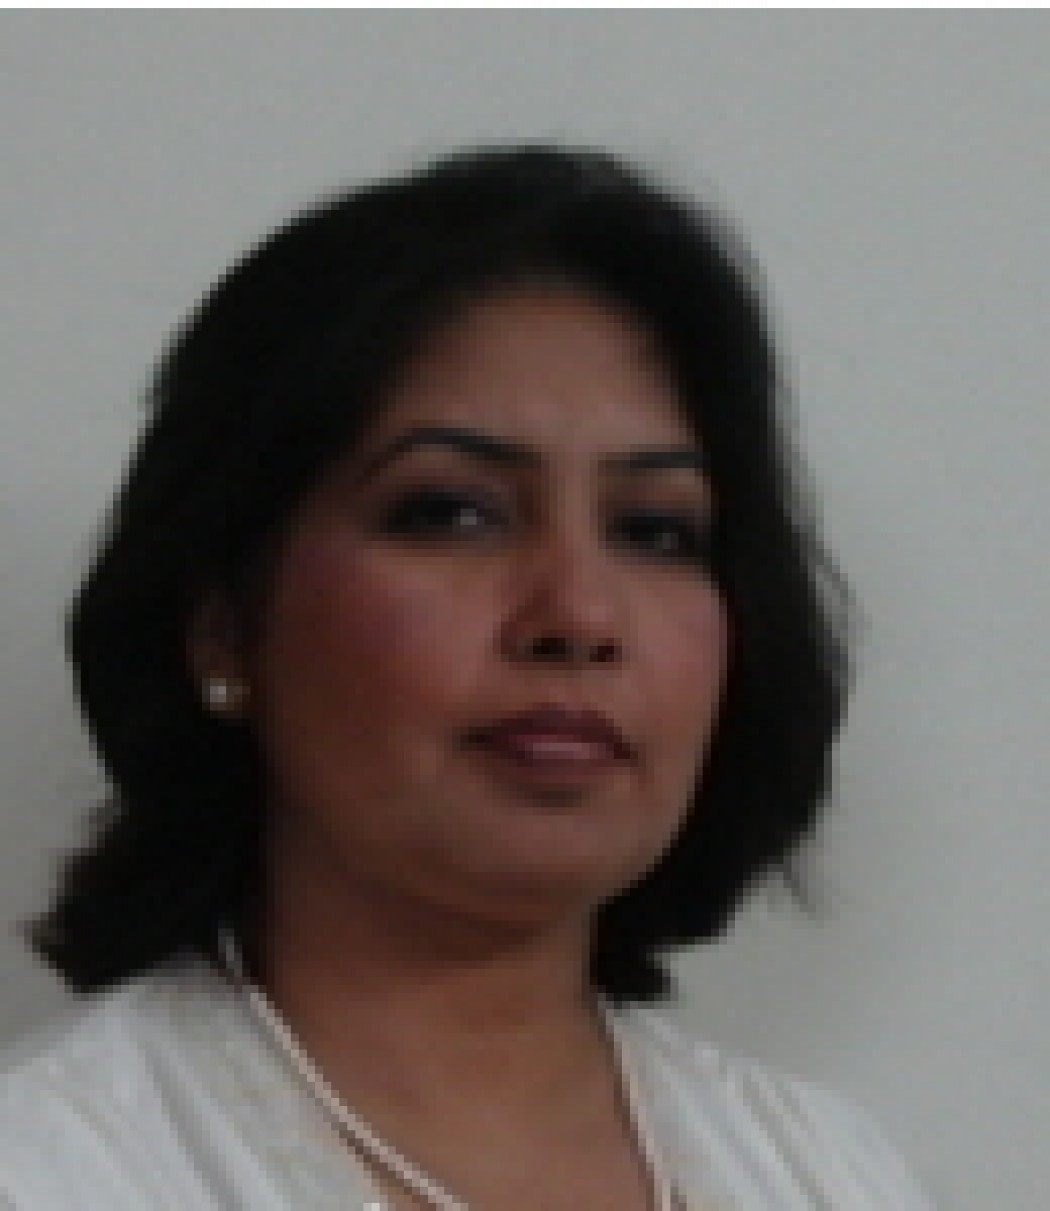 Inderjit Kaur